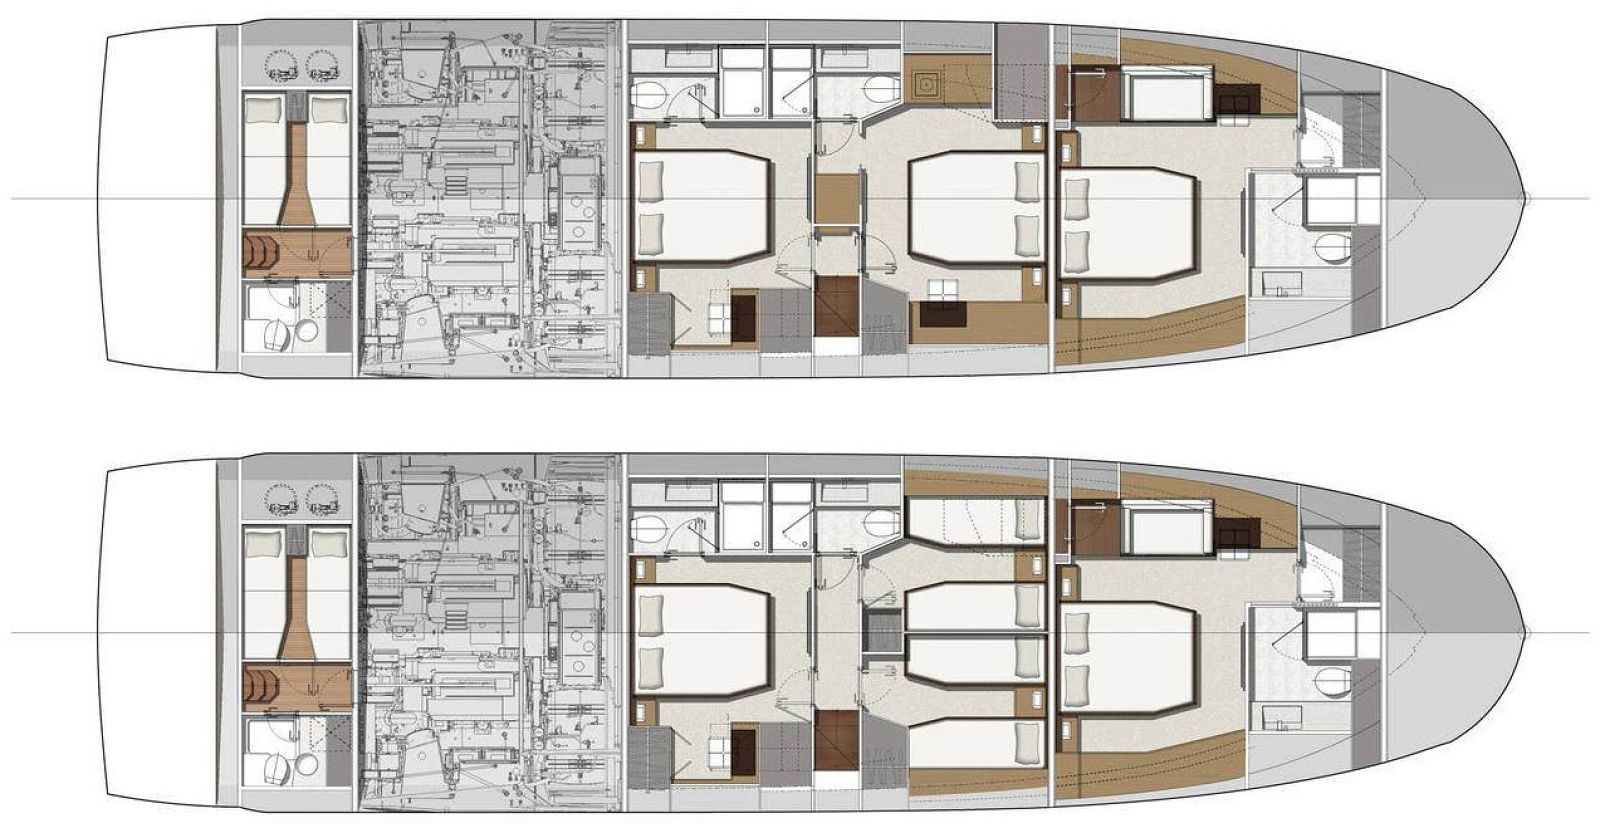 Lower Deck Layout